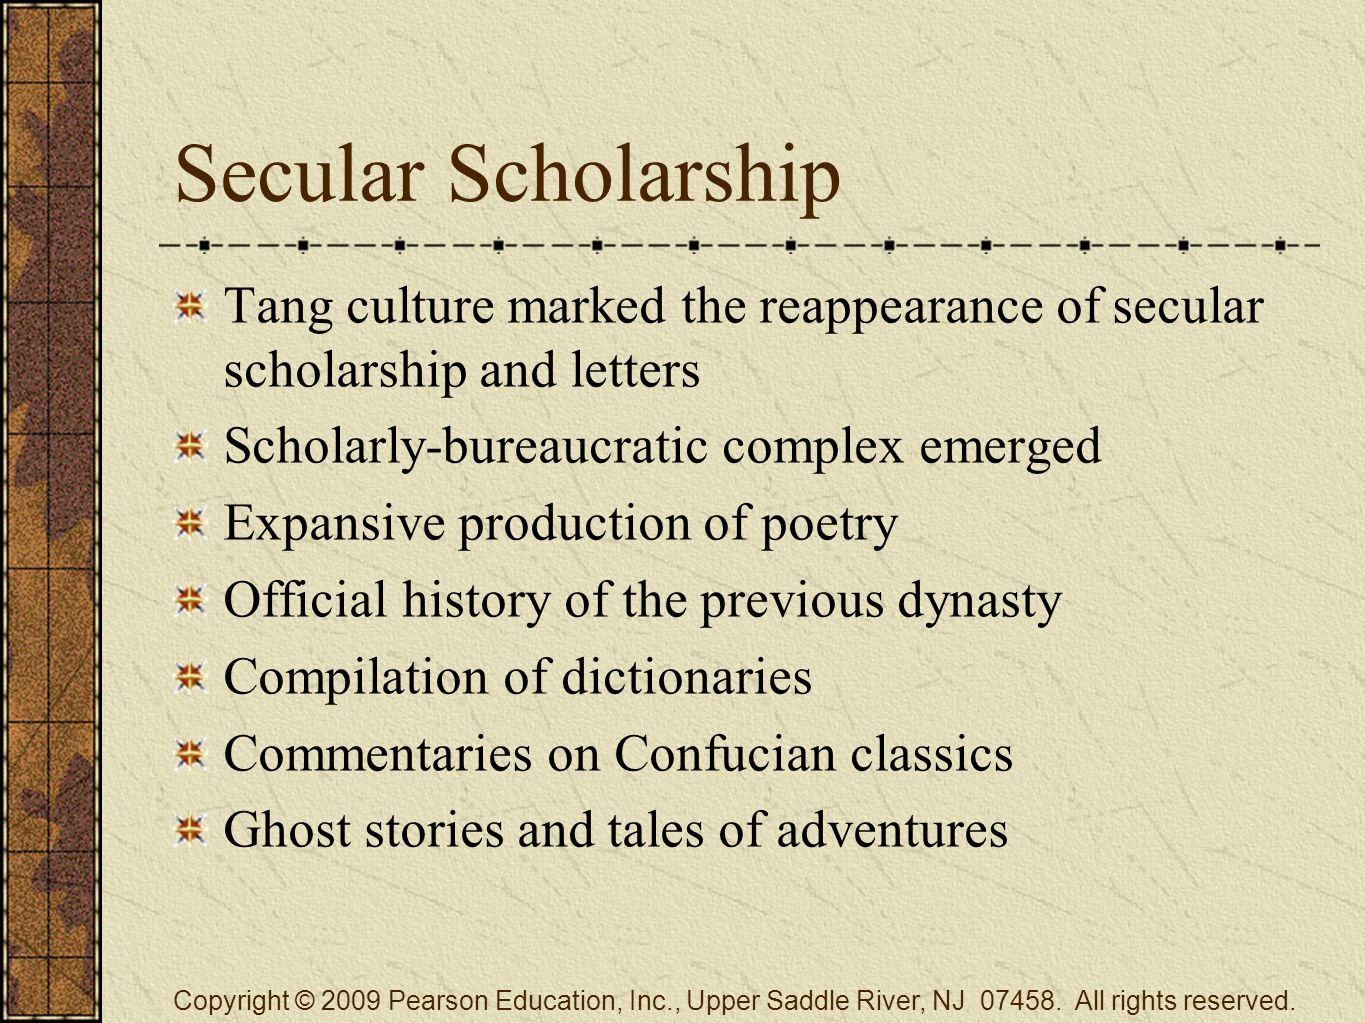 Secular Scholarship Tang culture marked the reappearance of secular scholarship and letters Scholarly-bureaucratic complex emerged Expansive production of poetry Official history of the previous dynasty Compilation of dictionaries Commentaries on Confucian classics Ghost stories and tales of adventures Copyright © 2009 Pearson Education, Inc., Upper Saddle River, NJ 07458.